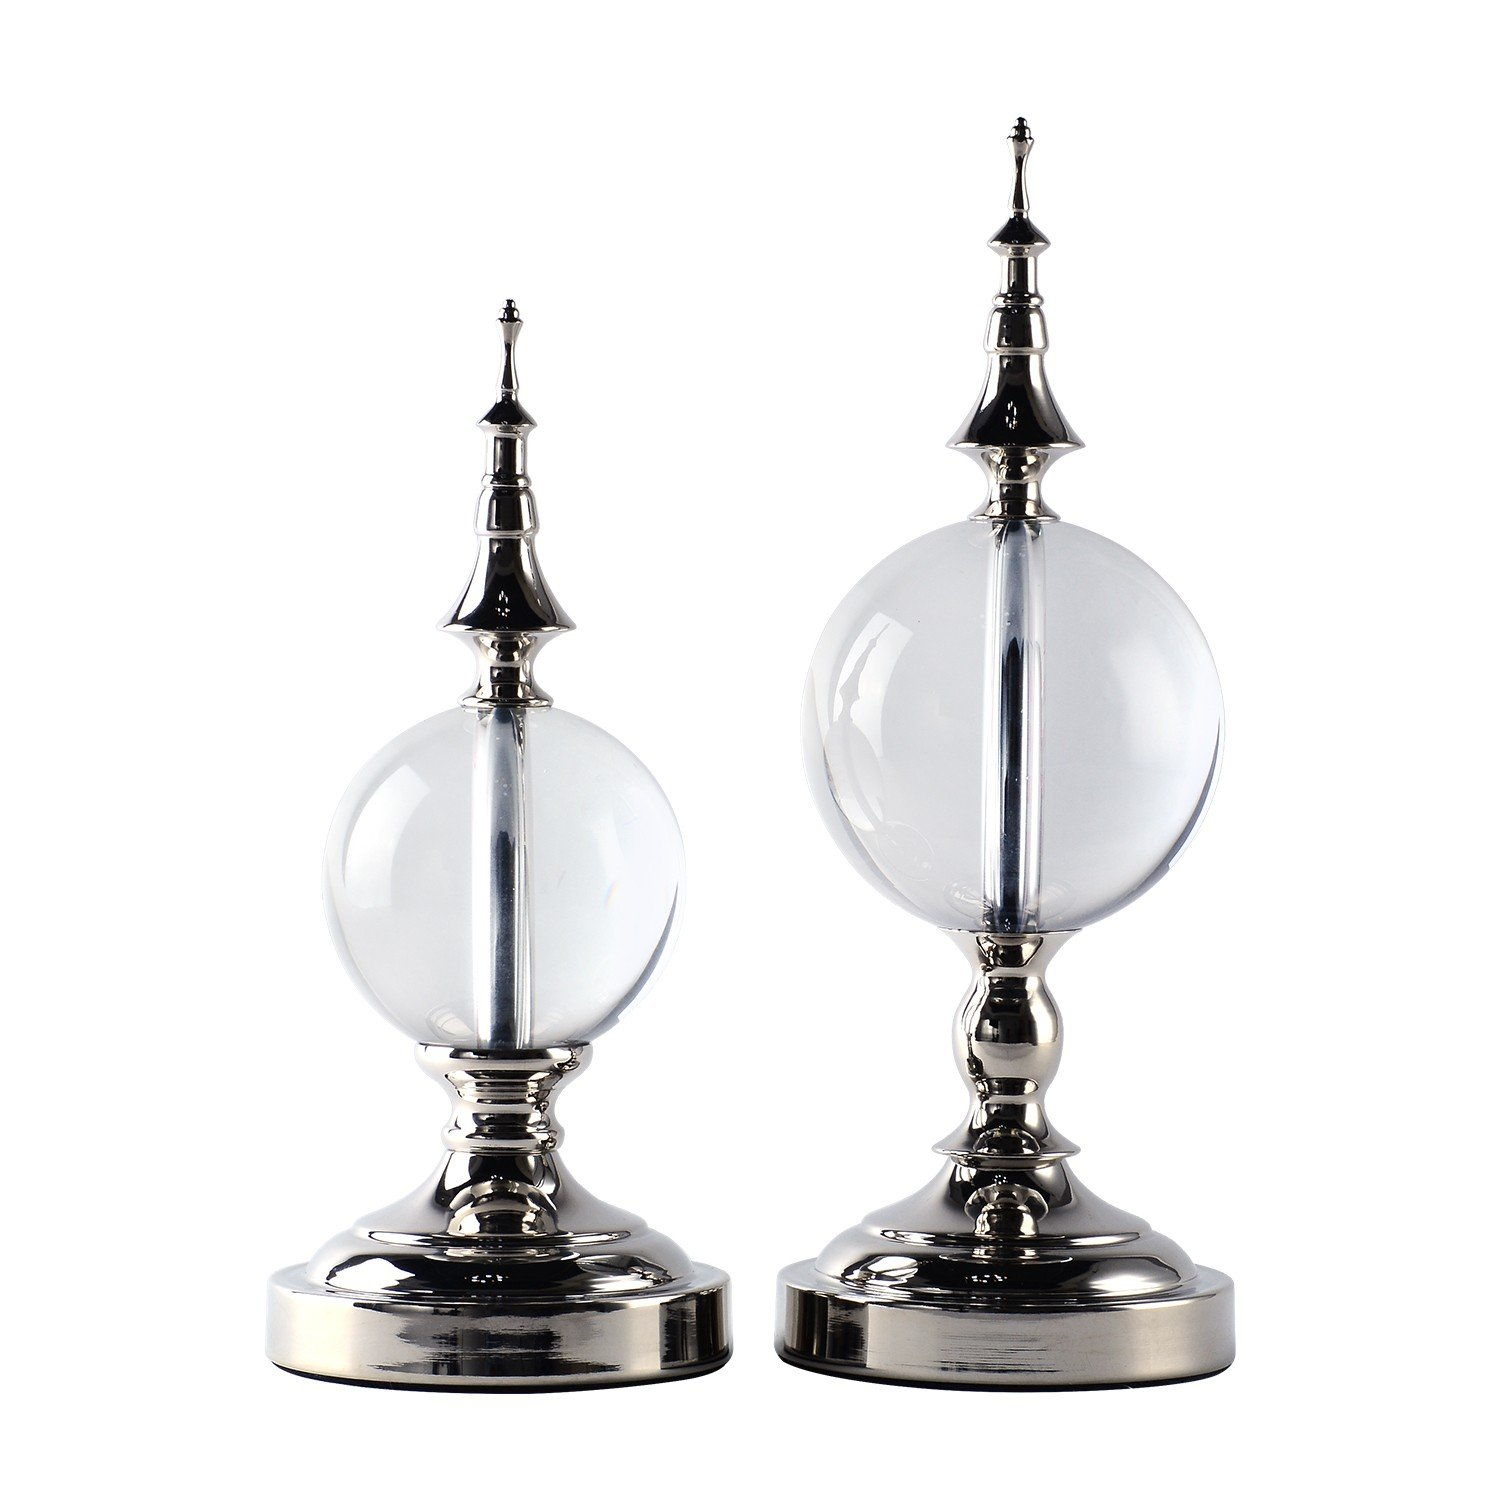 BRLIGHTING Tower Decoration Ancient Silver Pagoda Centerpiece with Solid Crystal for Home Office Hotel Decoration Crystal Ball Set of 2 Small &Big